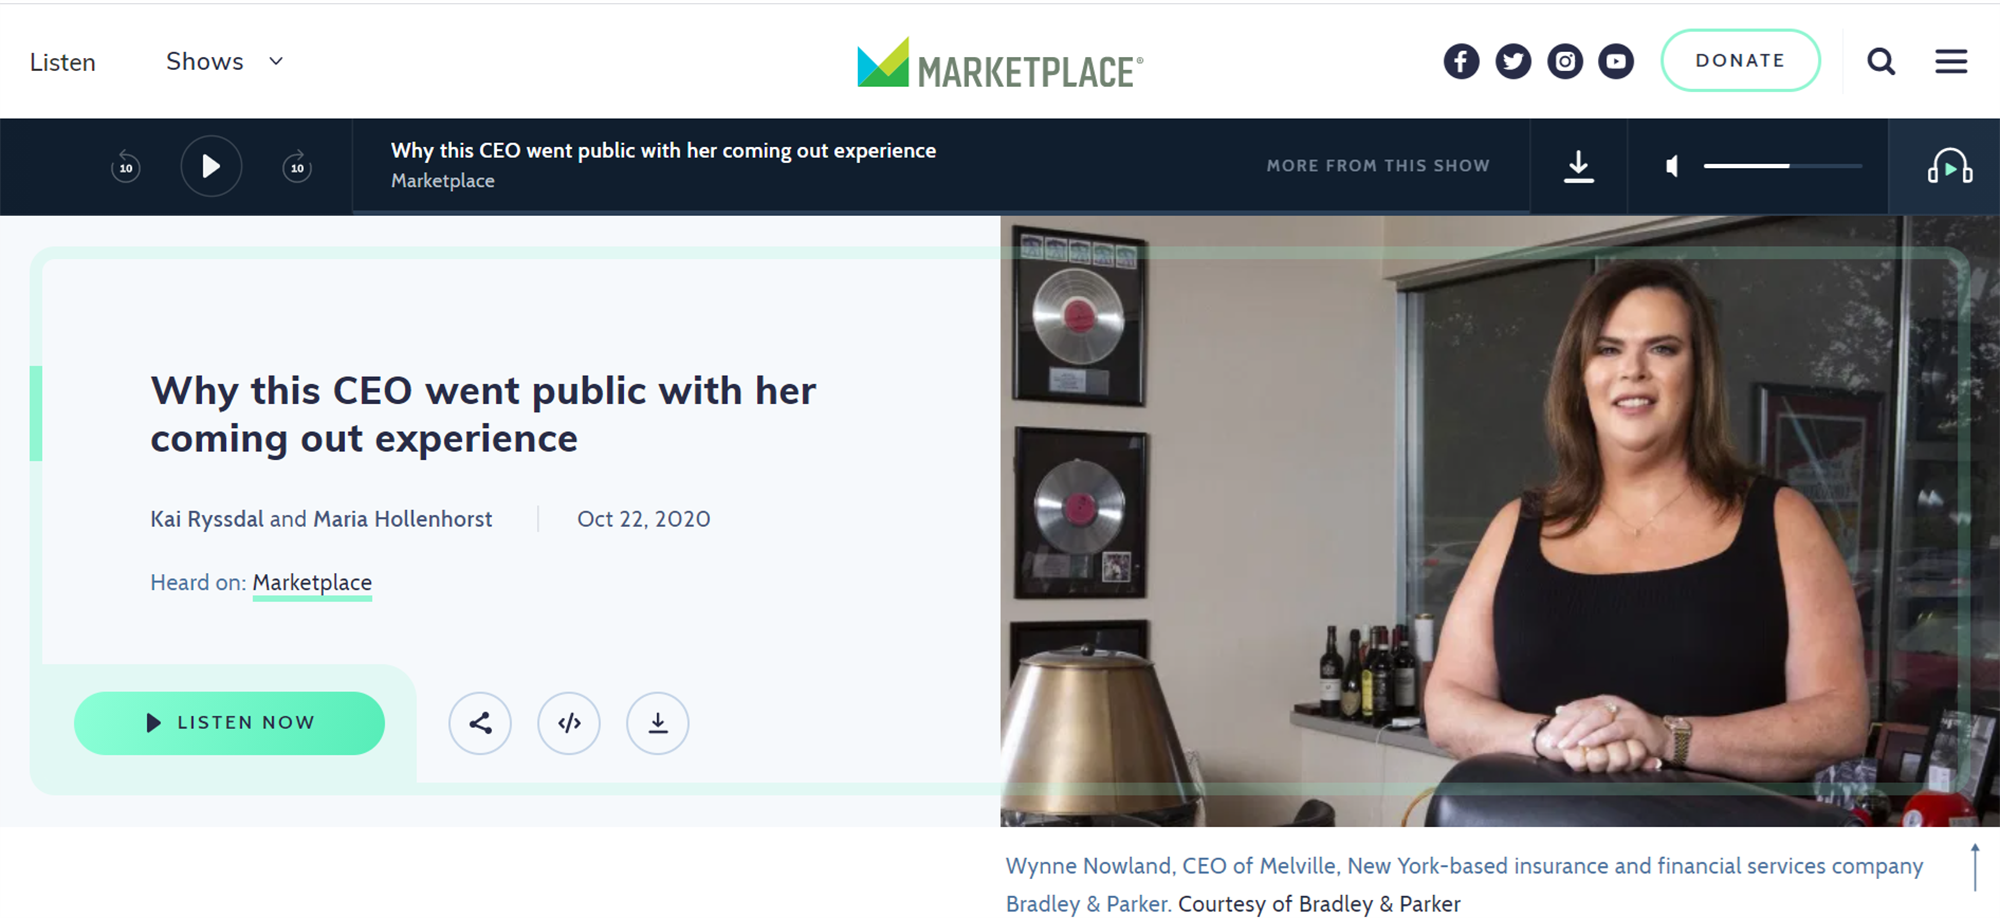 ceo-wynne-nowland-featured-on-nationwide-marketplace-podcast